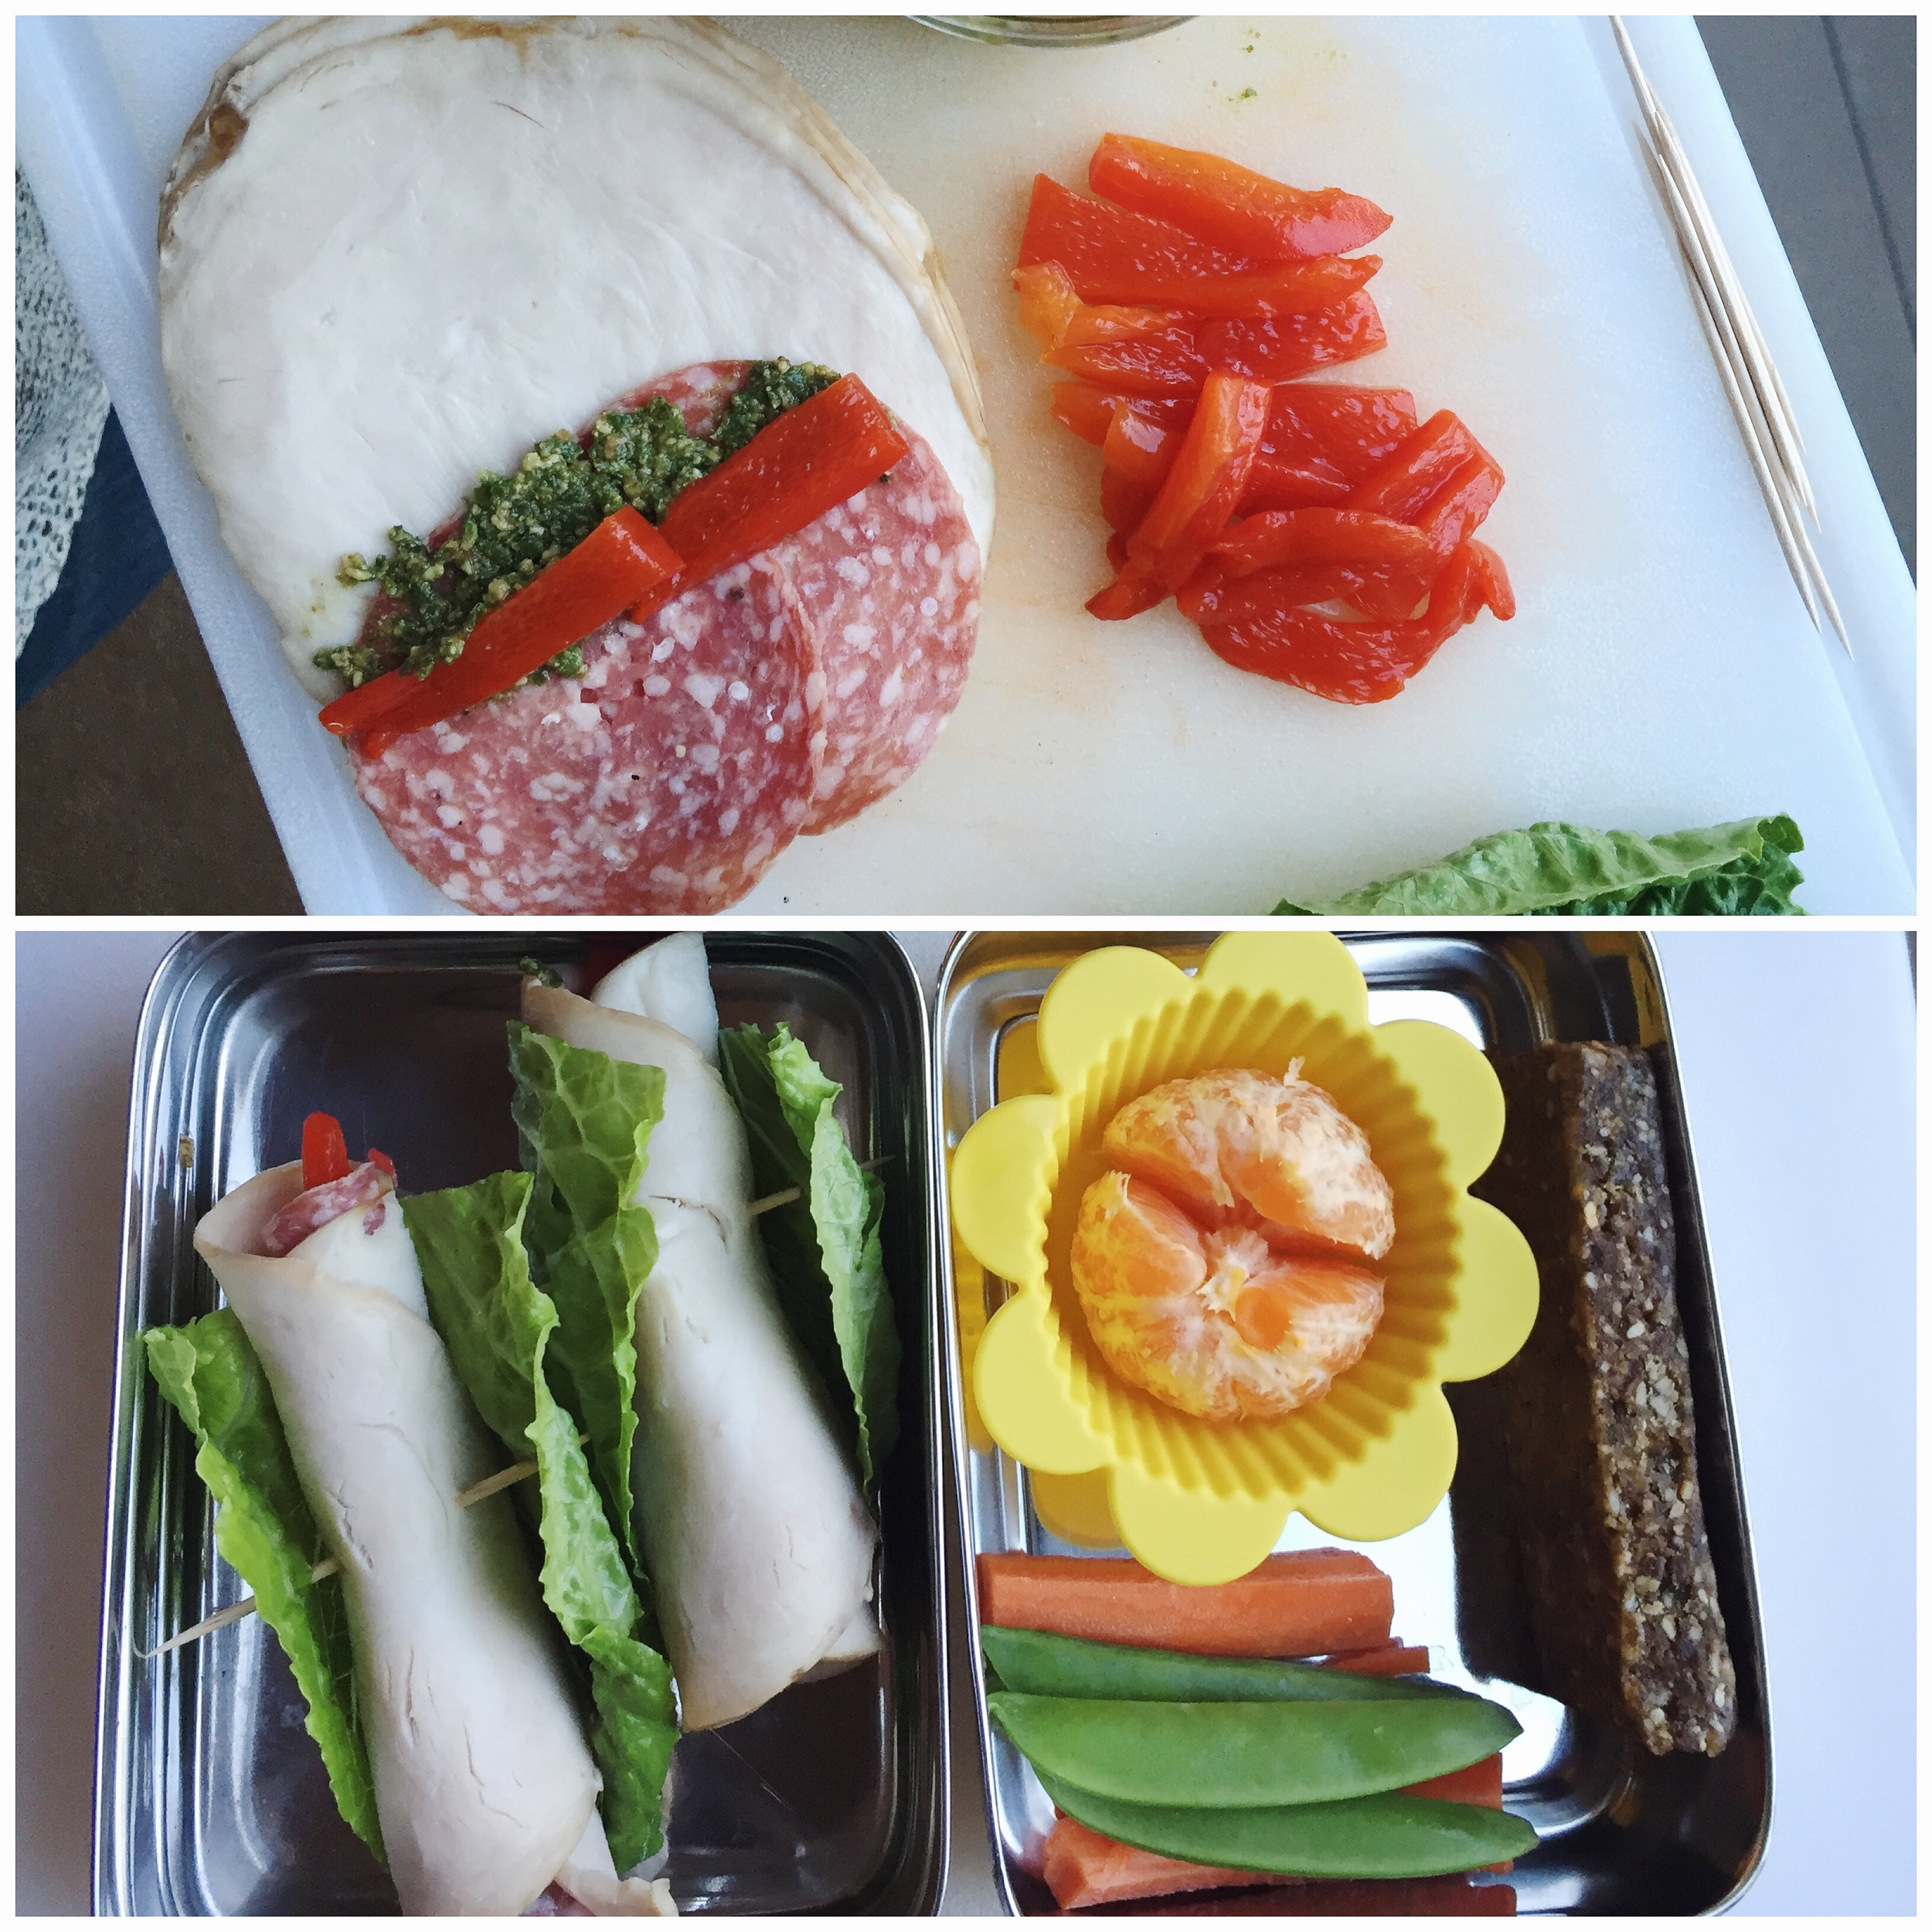 Nuncio Nutrition Lunches - Tuscan Wraps